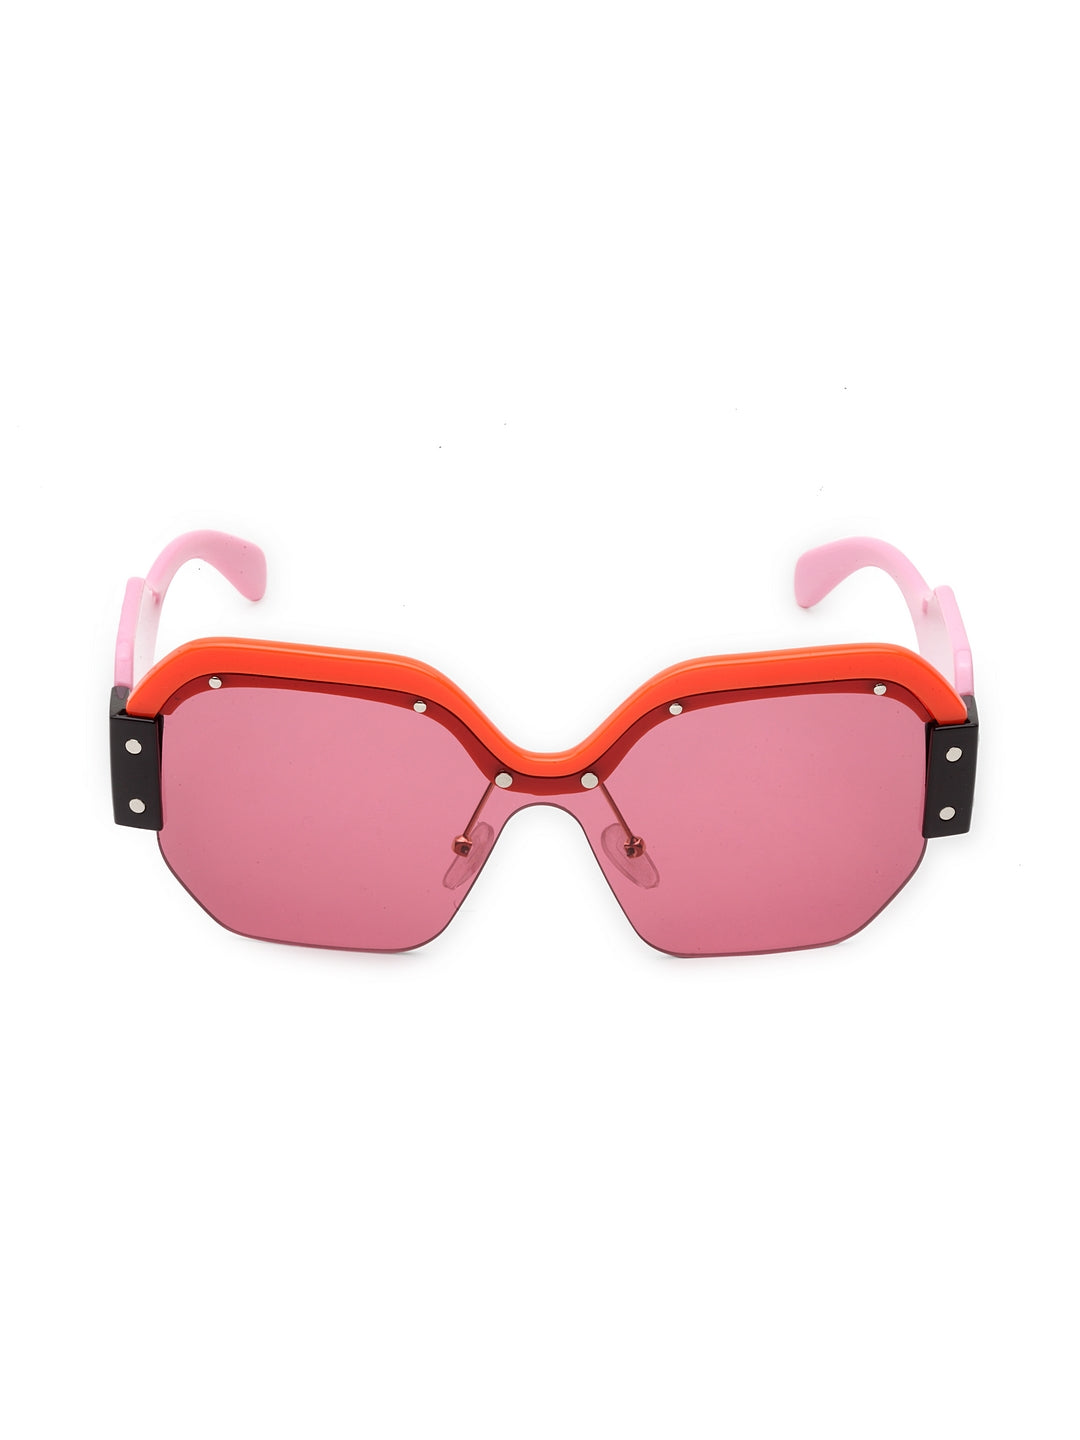 Avant-Garde Paris Hi Fashion Trendy Oversized Sunglasses